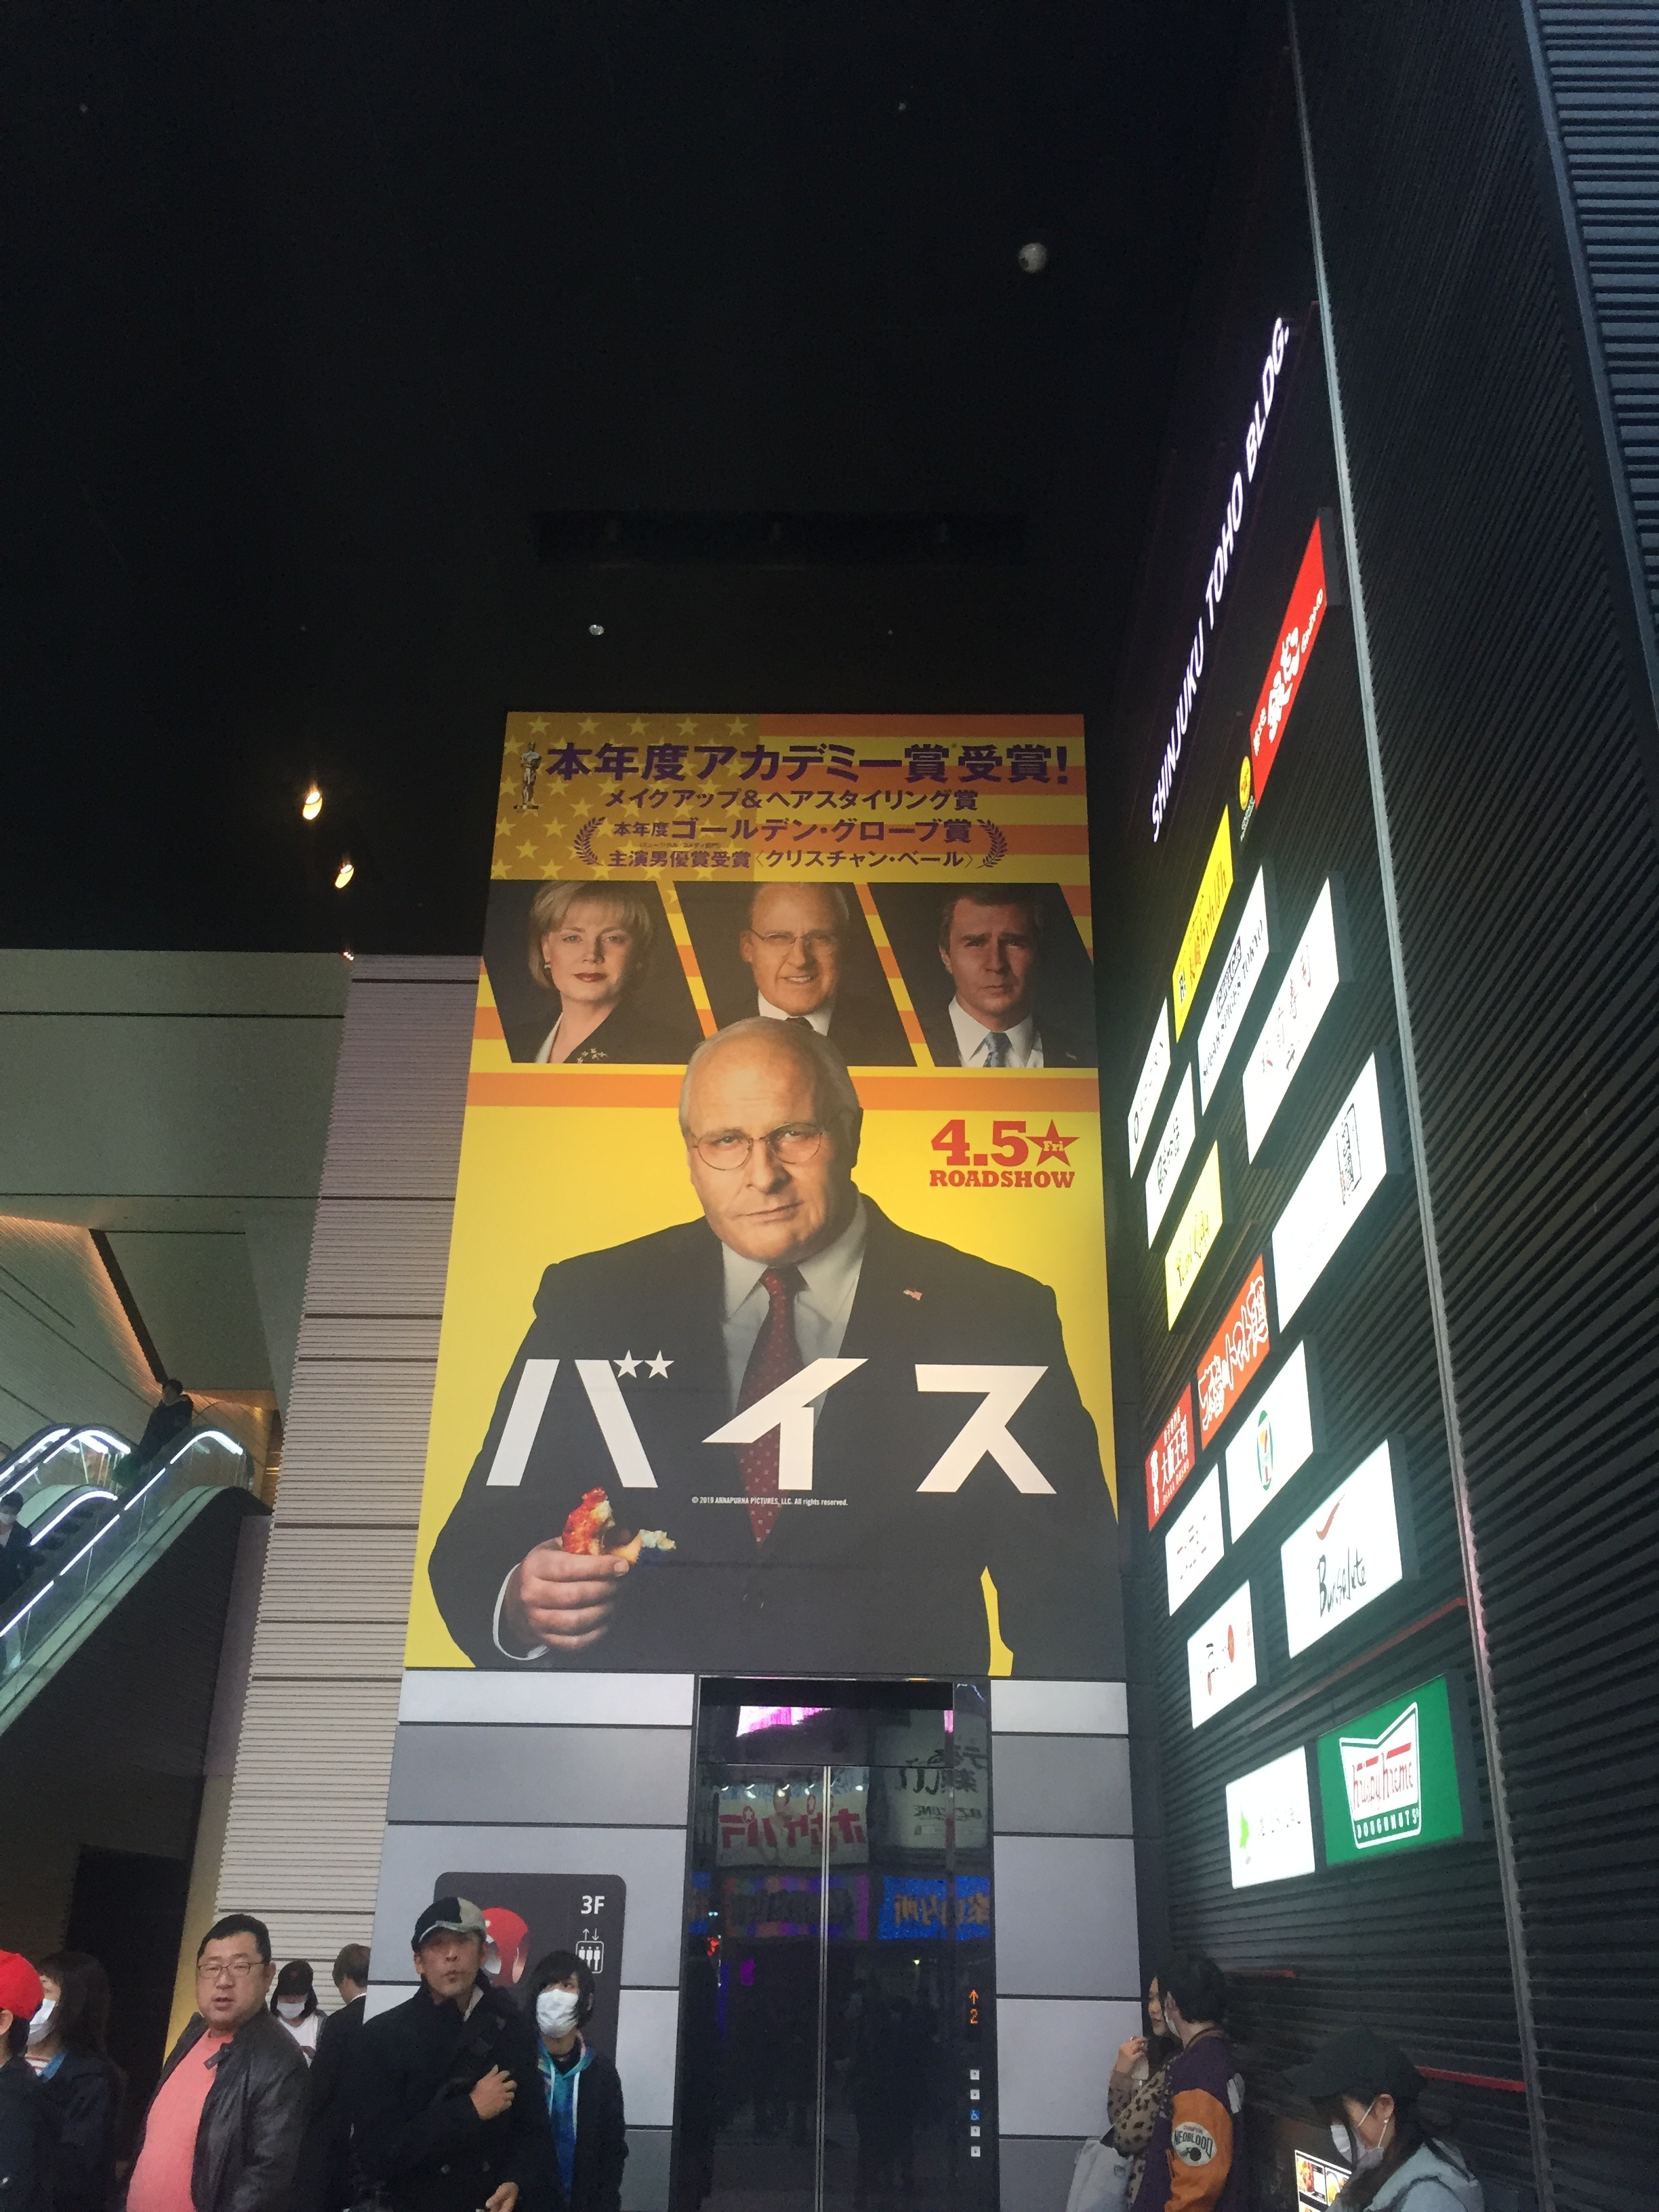 Vice in Japan at the Shinjuku Toho Tower